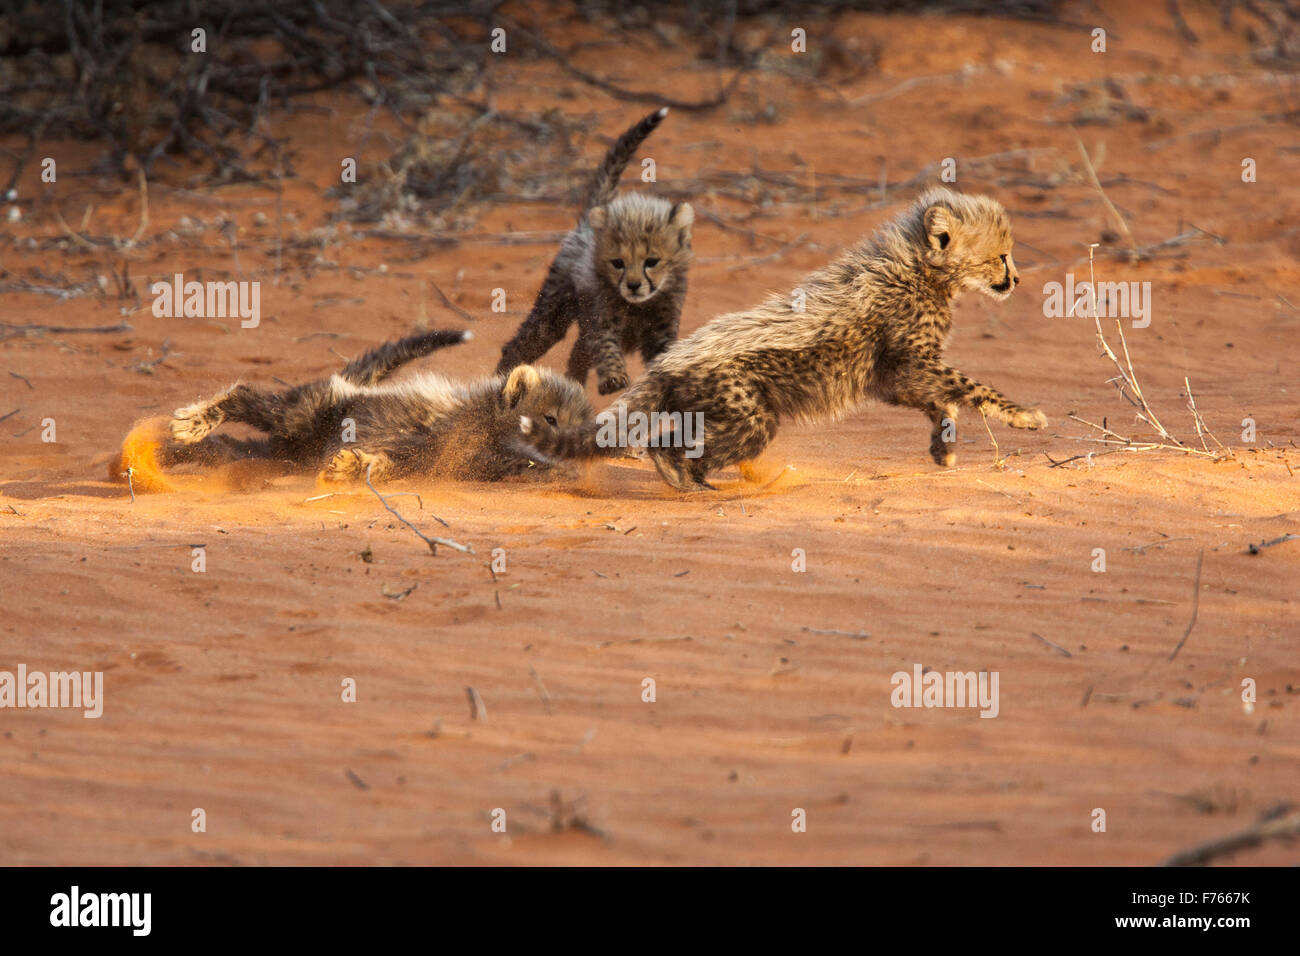 Cheetah cubs playing on a sand dune in the Kgalagadi Transfrontier Park - Stock Image